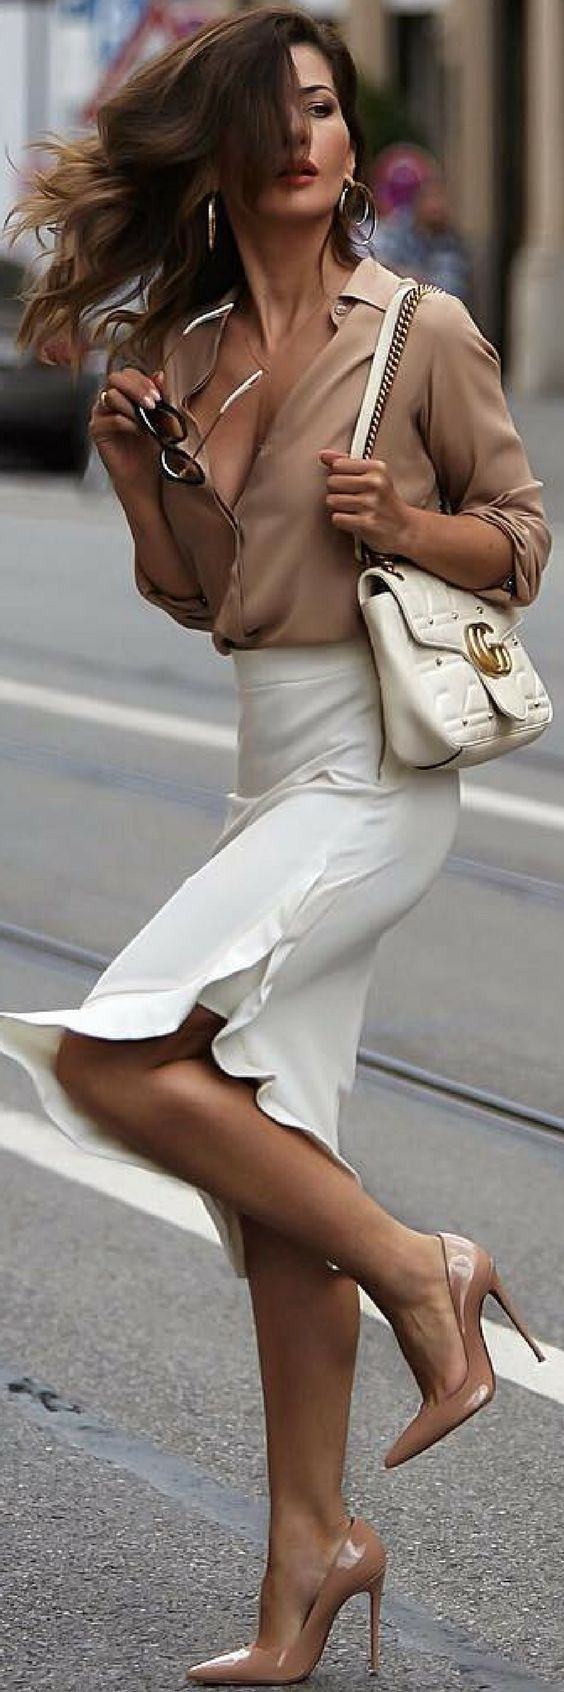 Beautiful classic nude and white colors make the satins and silks of this outfit really stand out. Its a sophisticated street style | Gorgeous women's outfits